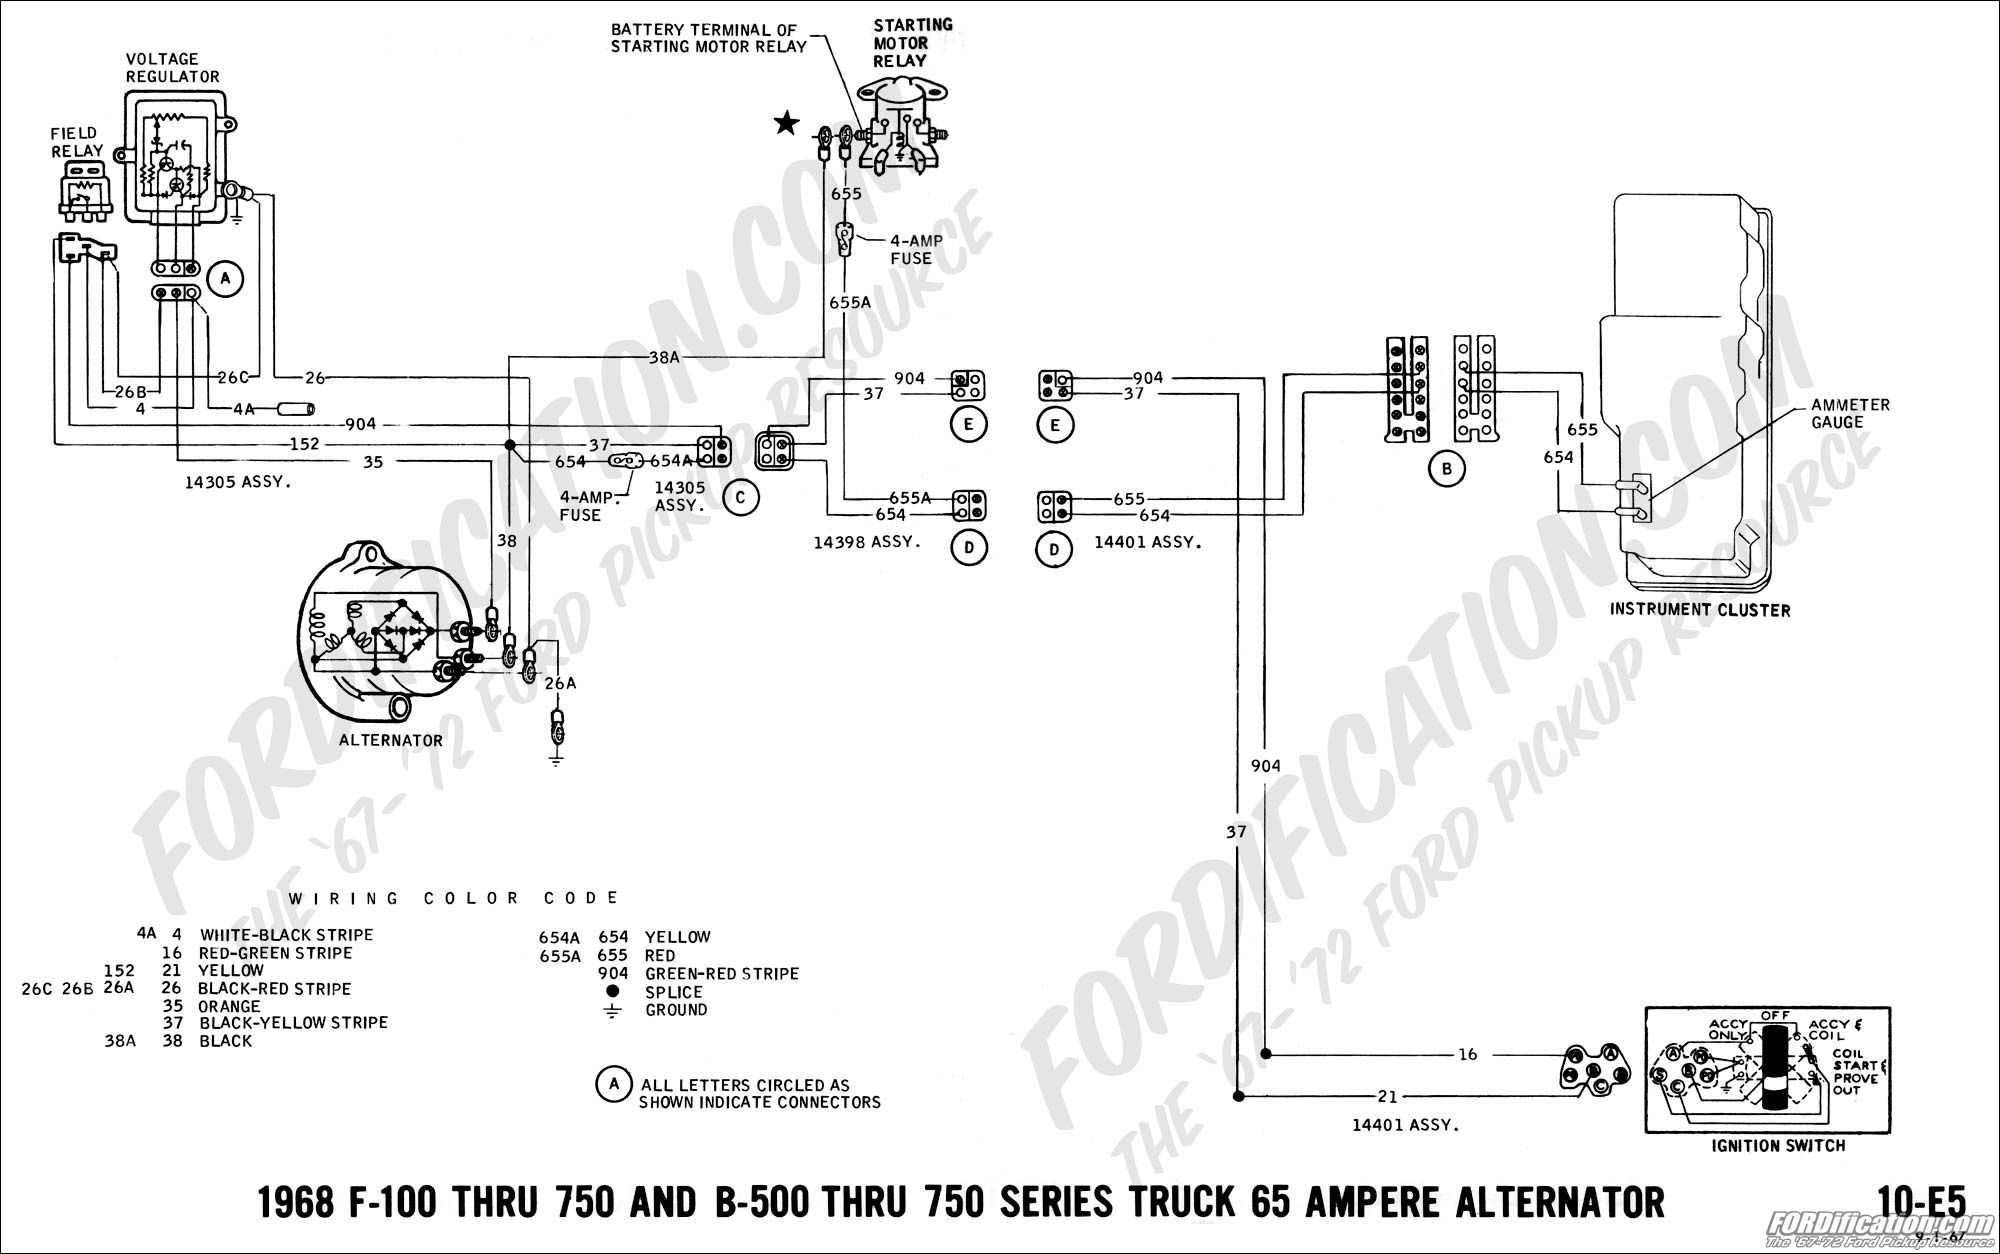 1972 Ford F100 Ignition Wiring Diagram Wire Data 1970 Switch 68 Alternator 76 F150 Pinterest Rh Com 74